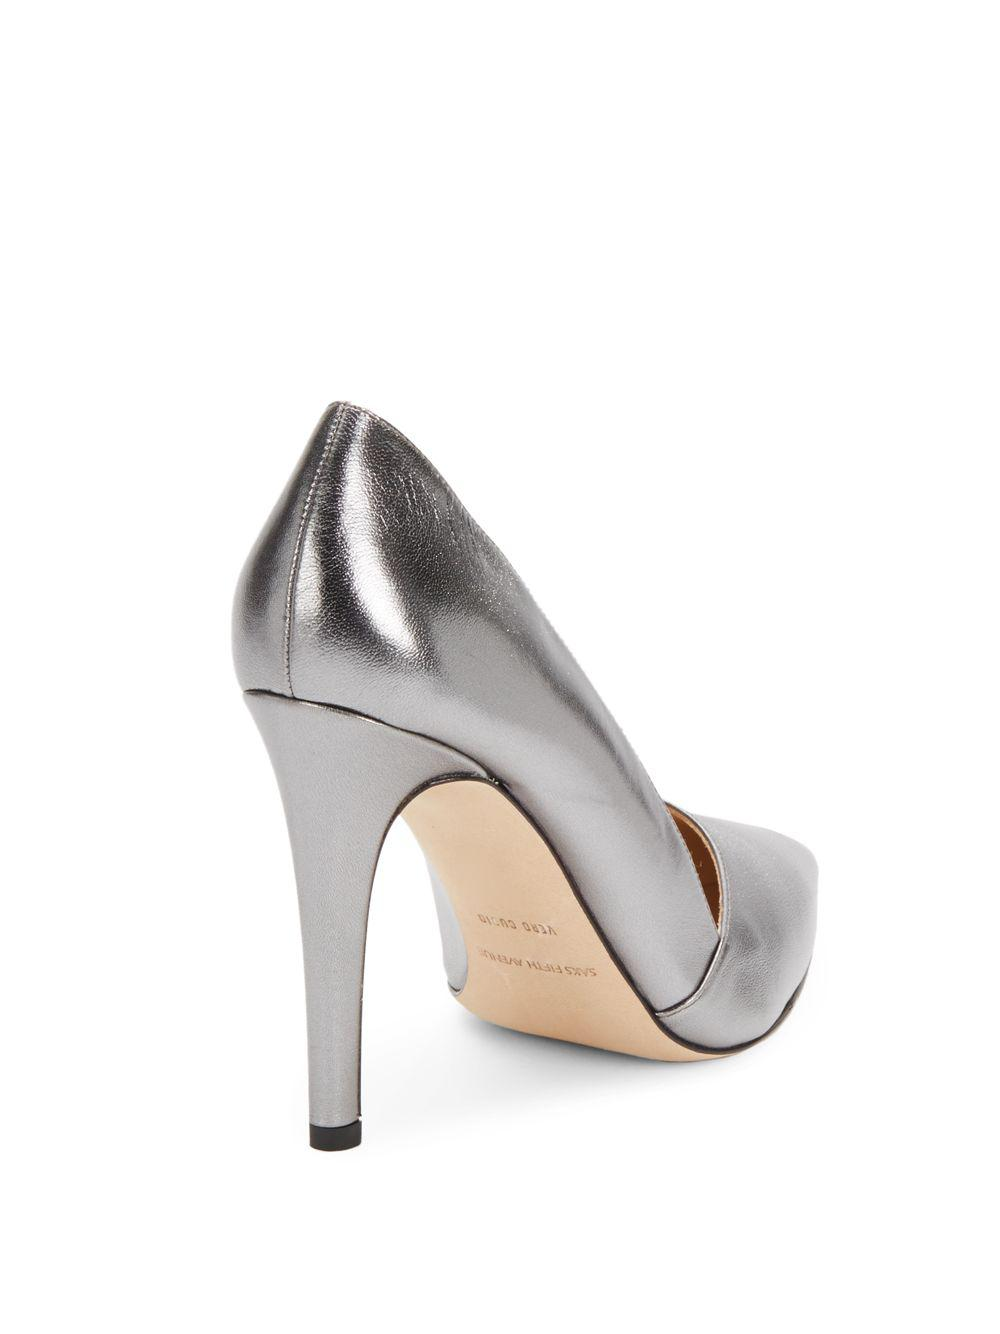 Saks Fifth Avenue Metallic Leather Pumps free shipping 2014 newest cheap high quality vFhlm